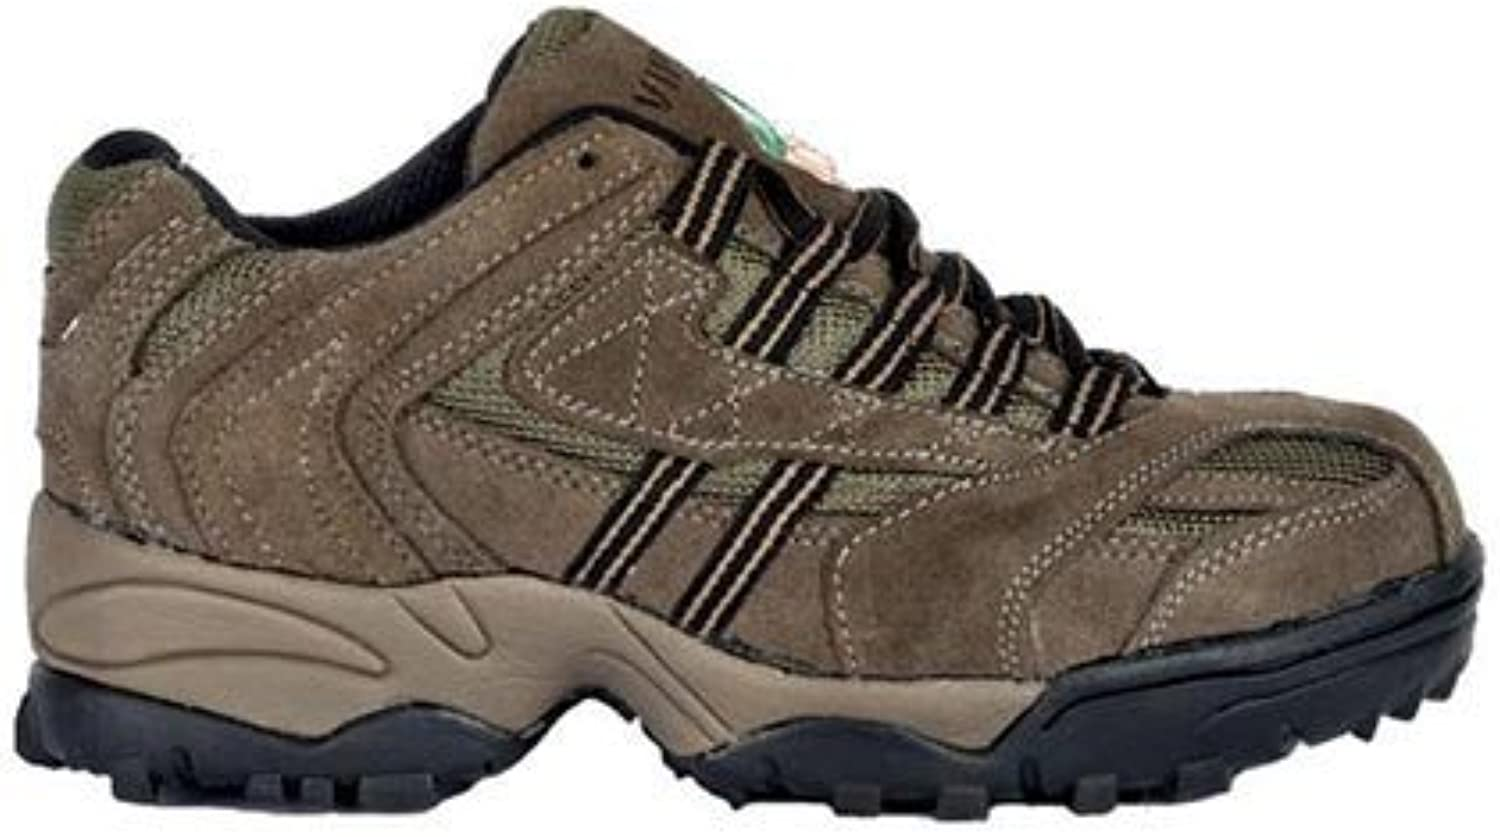 Viper shoes HOLLEY SIZE EE - WOMAN LOW CUT SAFETY WORK HIKER 9513 Brown